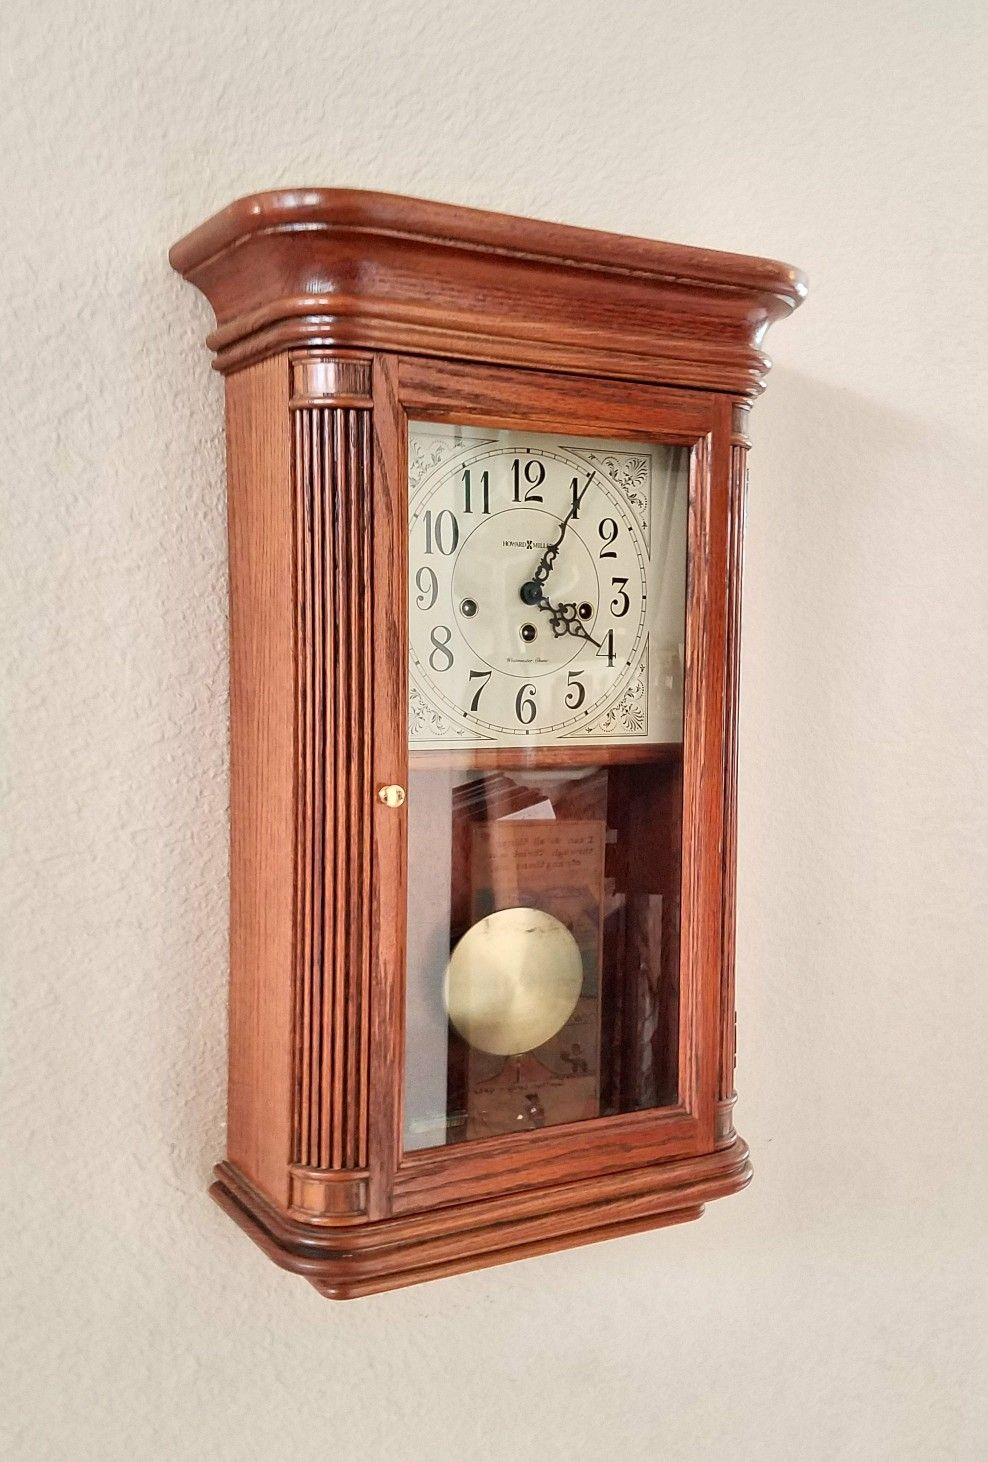 Professionally Restored Vintage Howard Miller Westminster Chime Pendulum Wall Clock From Theclo Pendulum Wall Clock Howard Miller Wall Clock Antique Wall Clock